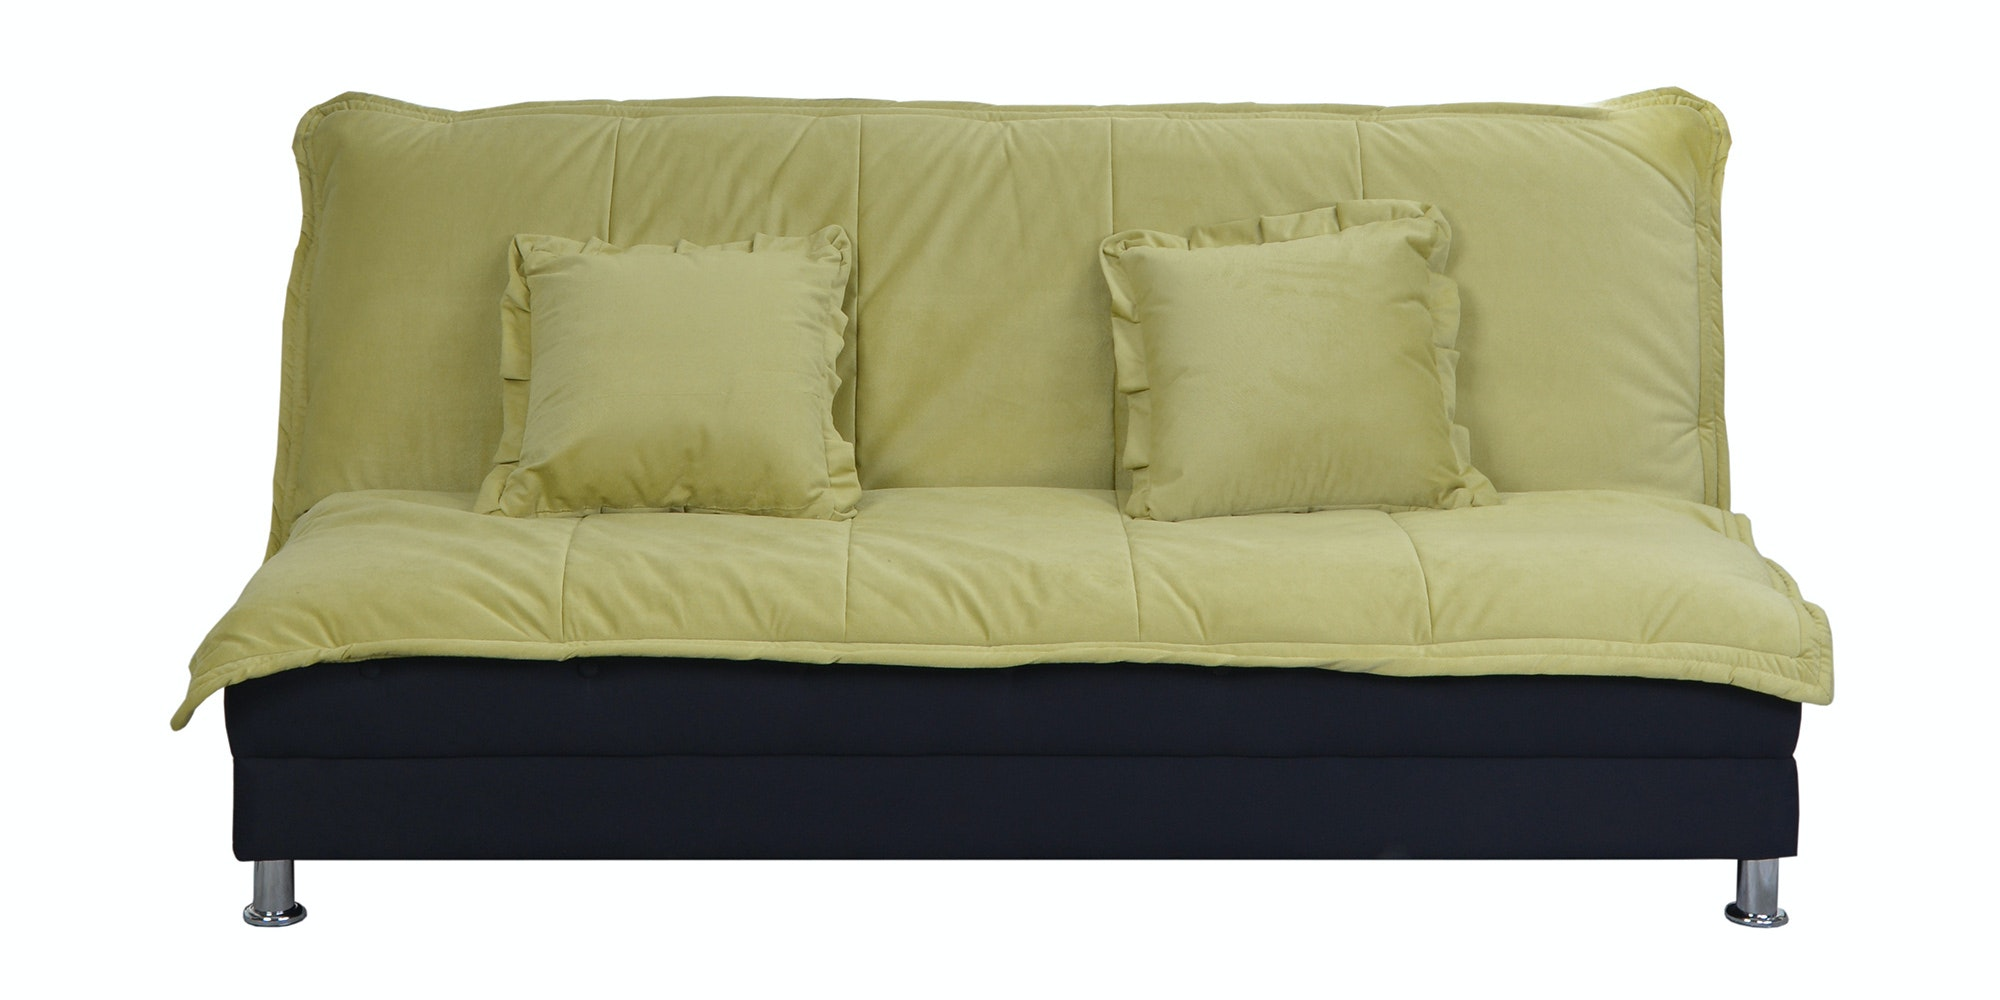 OLC OLC Sofabed Wellington Grean Tea